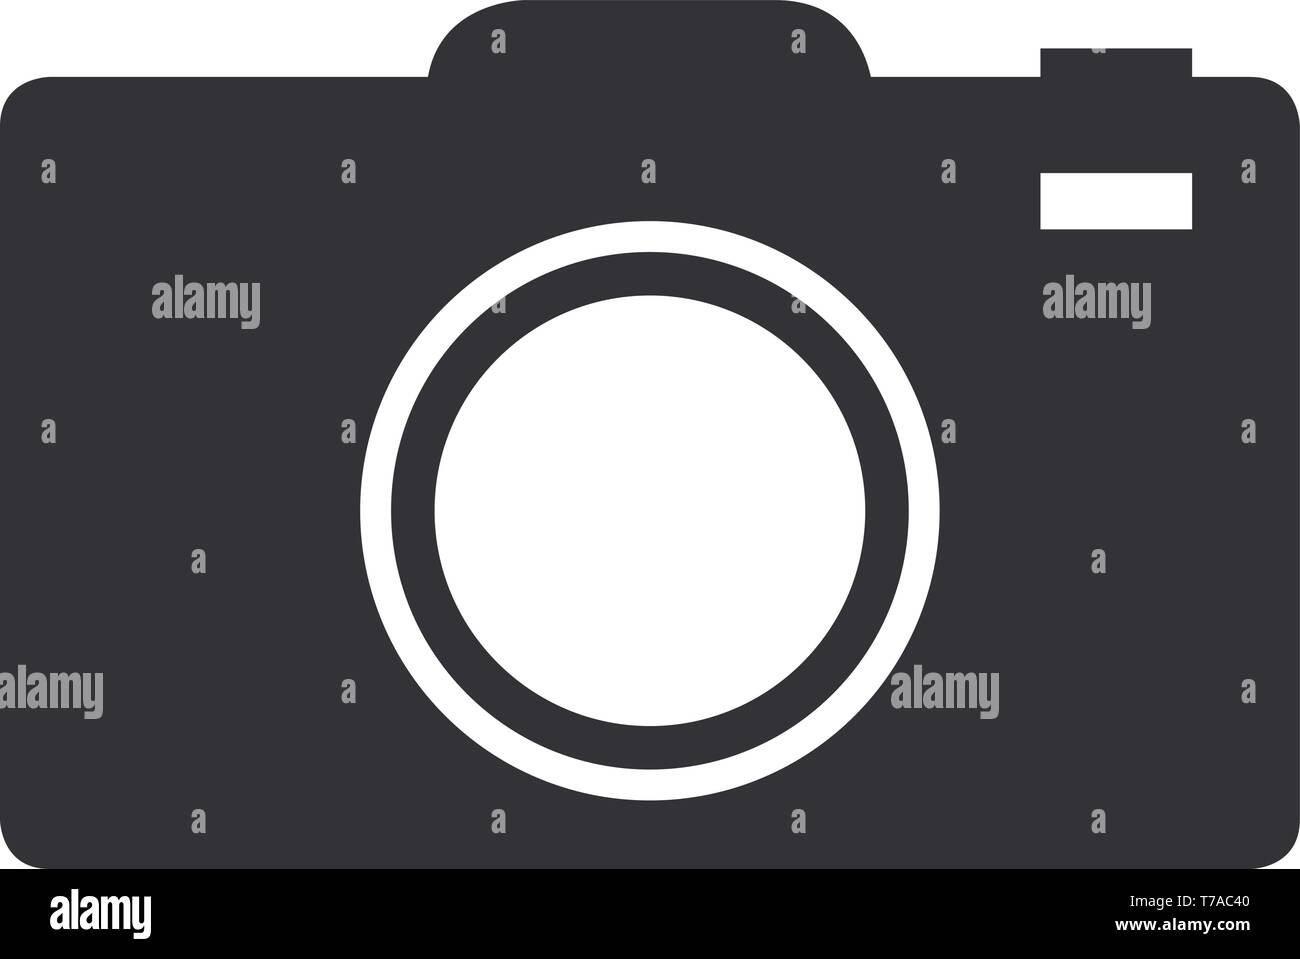 Flat photo camera photography icon or symbol vector illustration - Stock Image